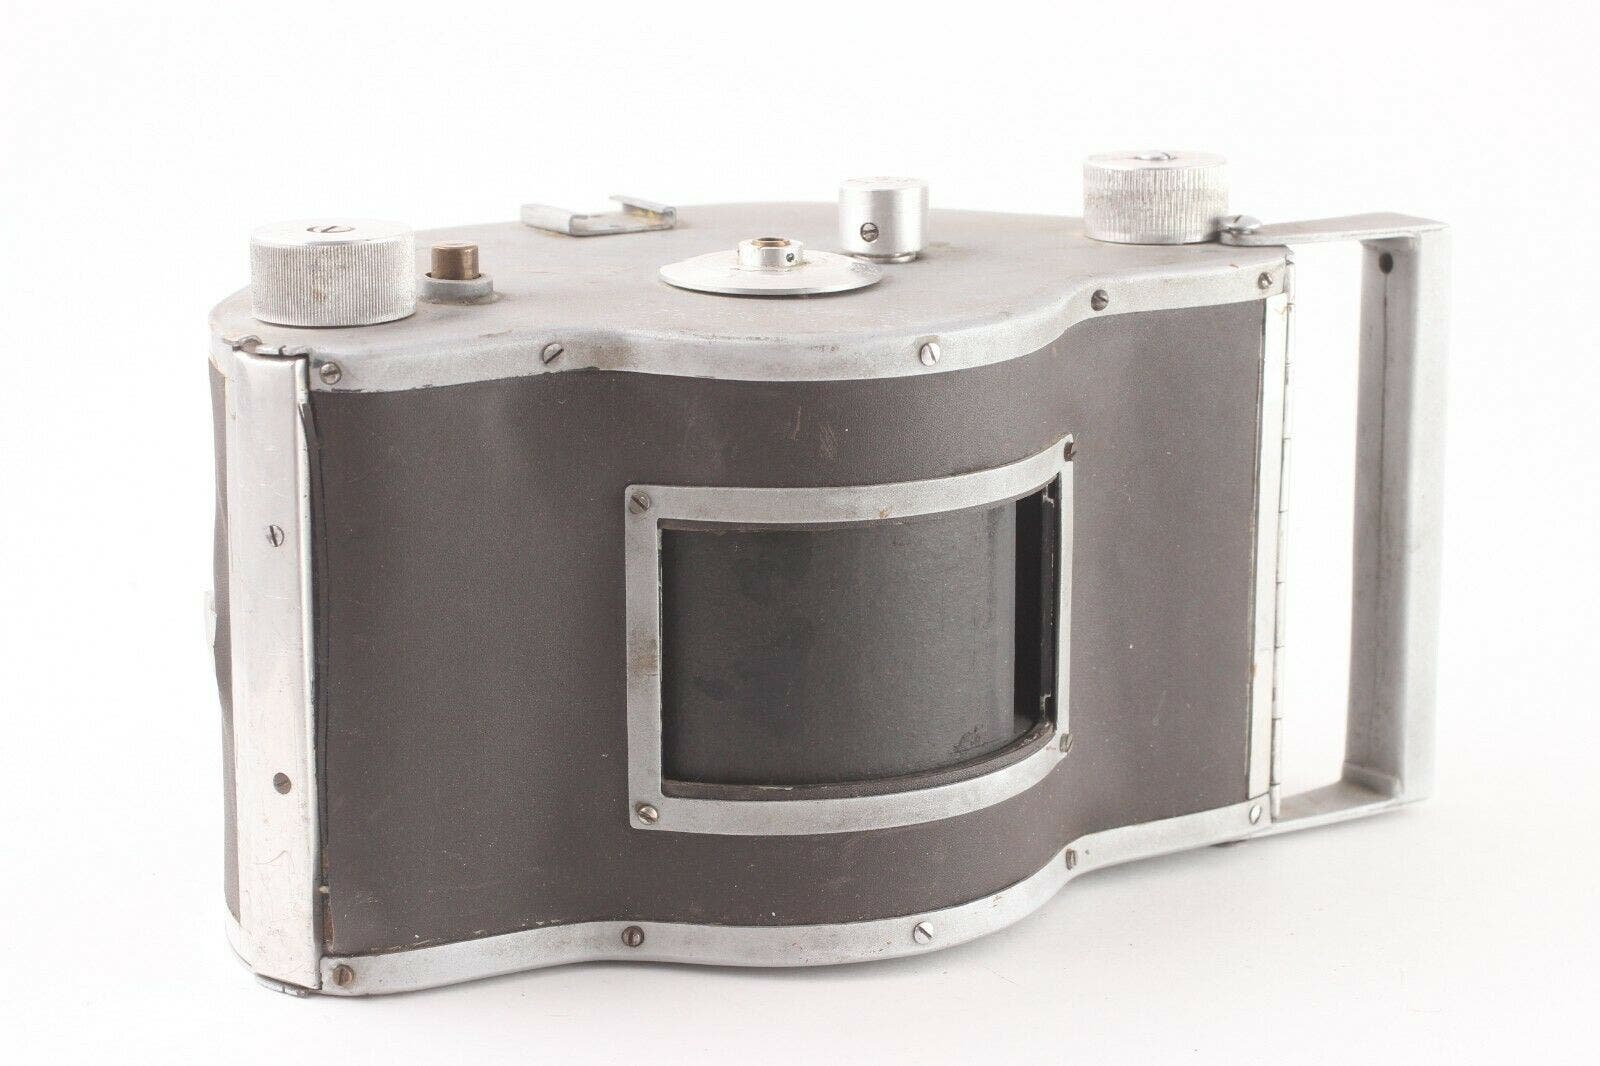 This Mysterious USSR Prototype Panoramic Camera Is Yours for $40,000